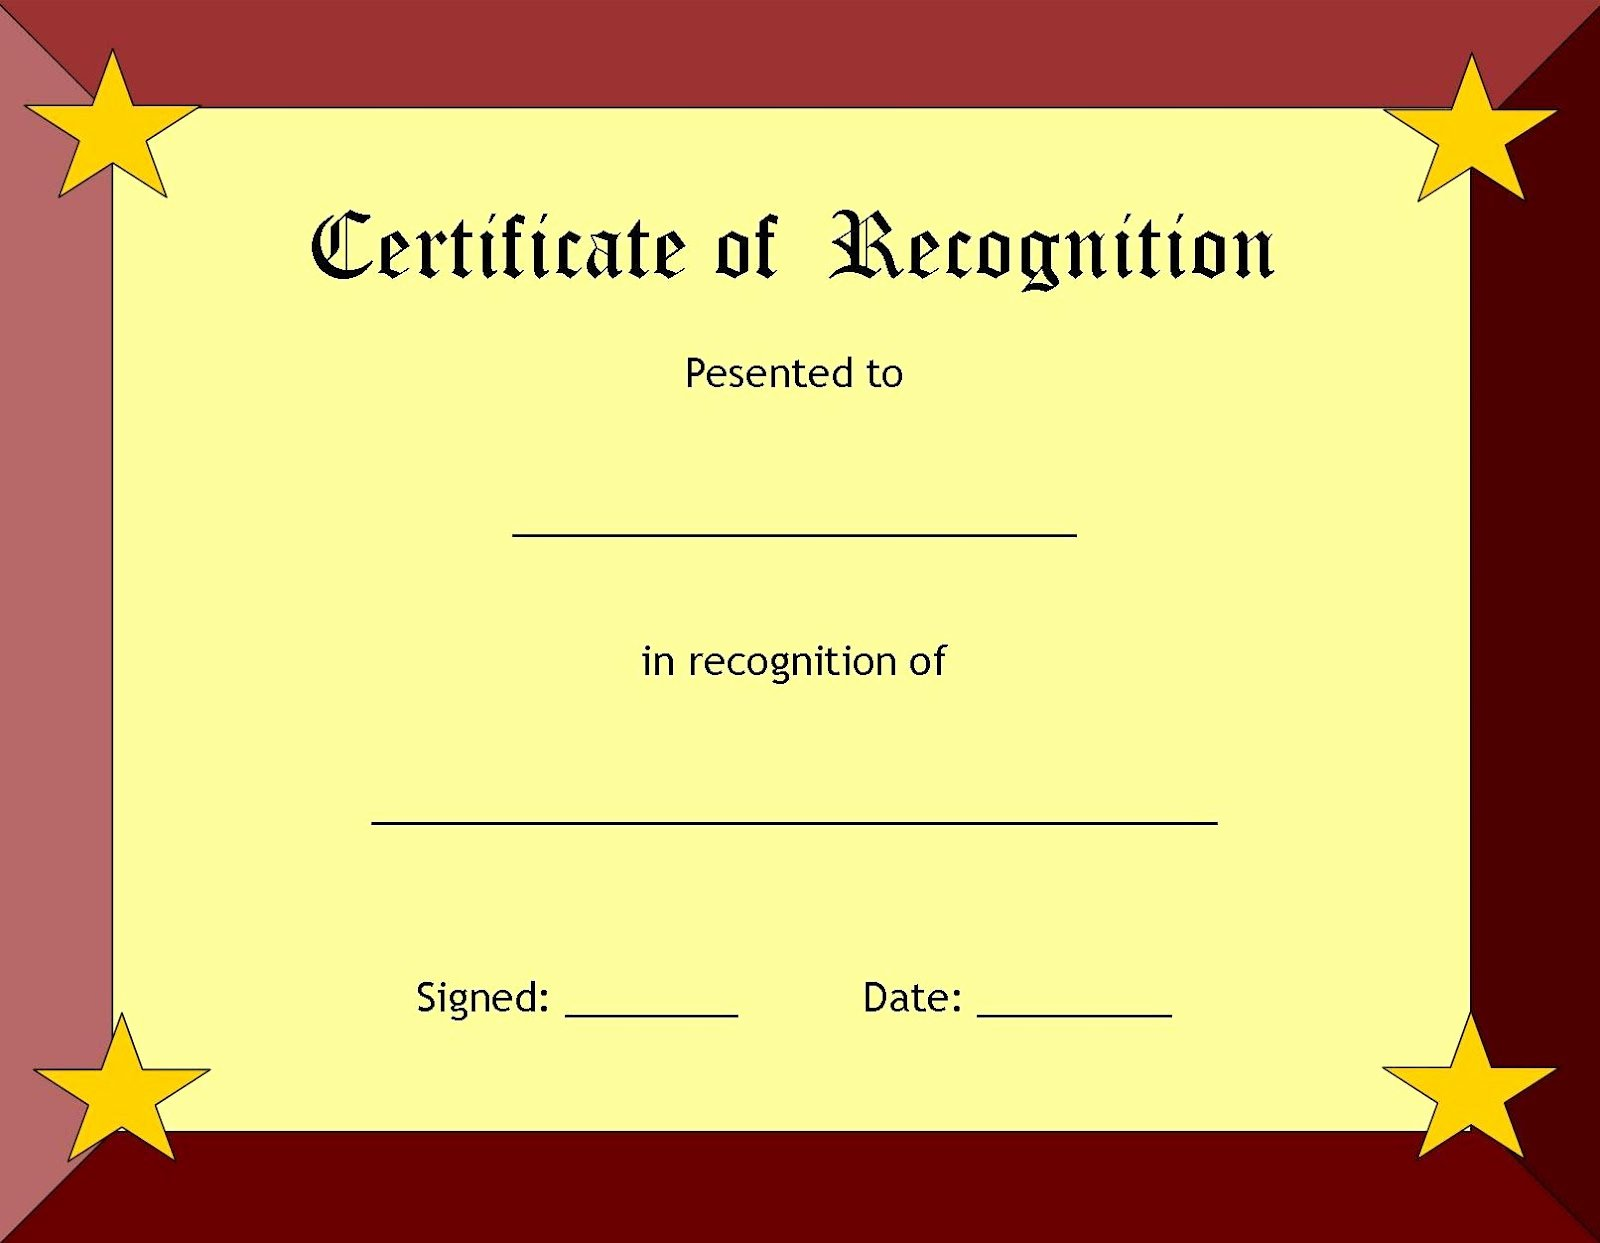 This Certificate is Awarded to Elegant A Collection Of Free Certificate Borders and Templates